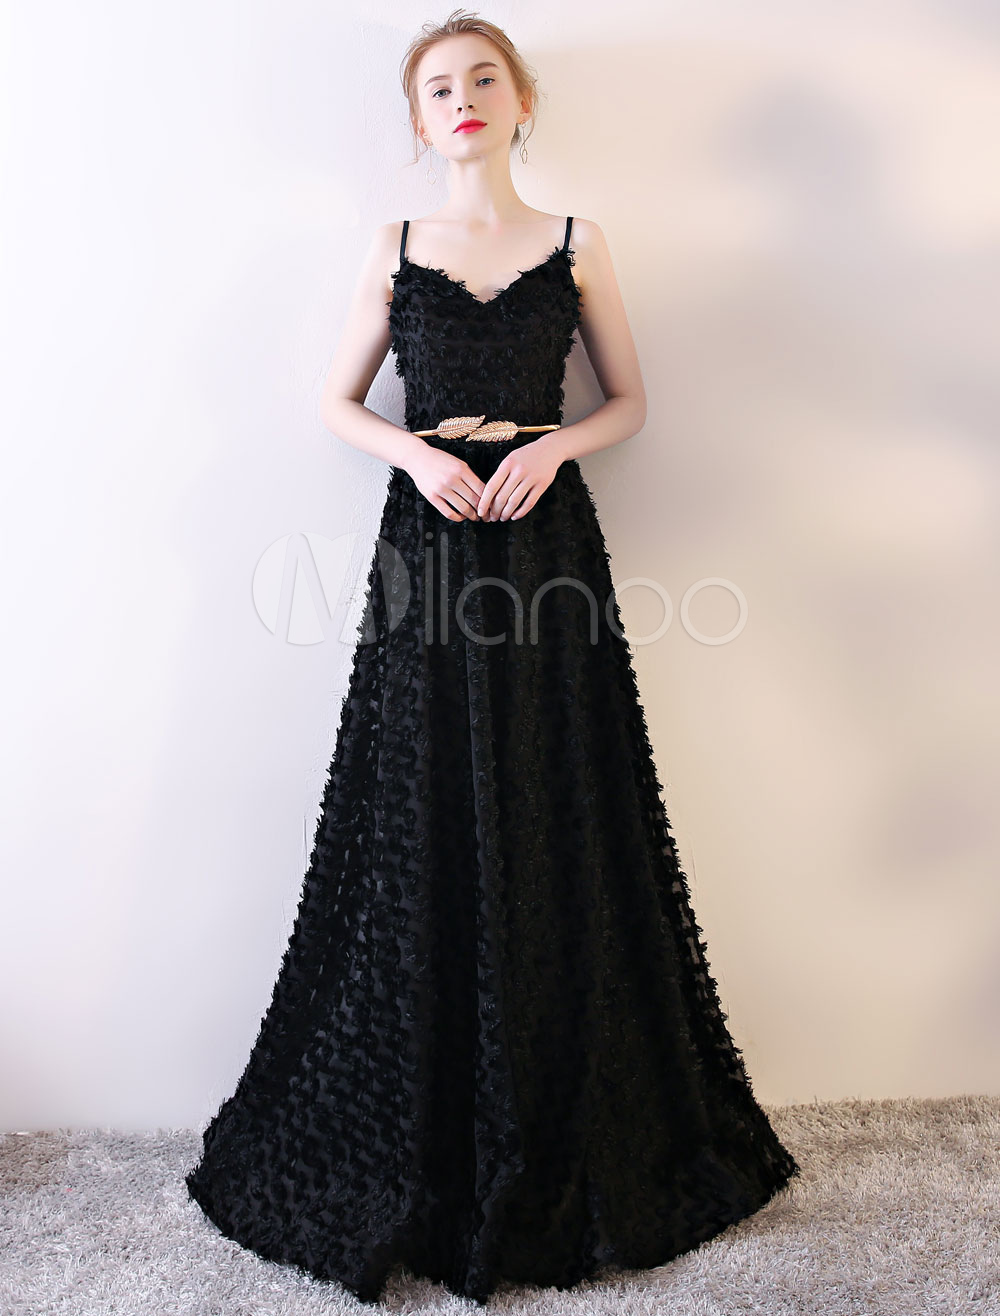 Buy Black Prom Dresses Spaghetti Straps Backless Prom Dress Long A Line Floor Length Formal Dress With Sash for $105.59 in Milanoo store